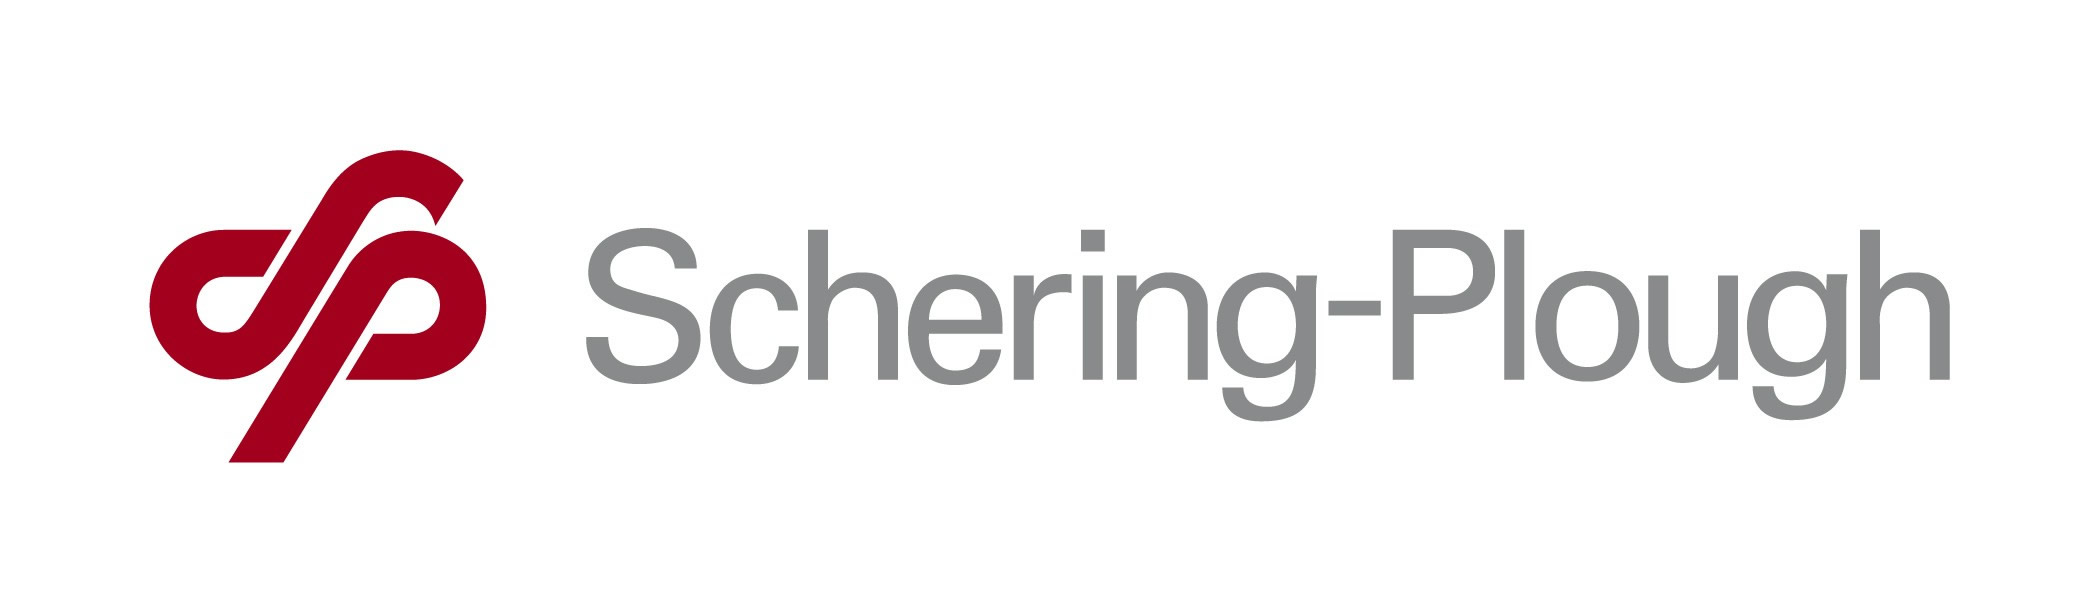 Logo_Schering-Plough.jpg